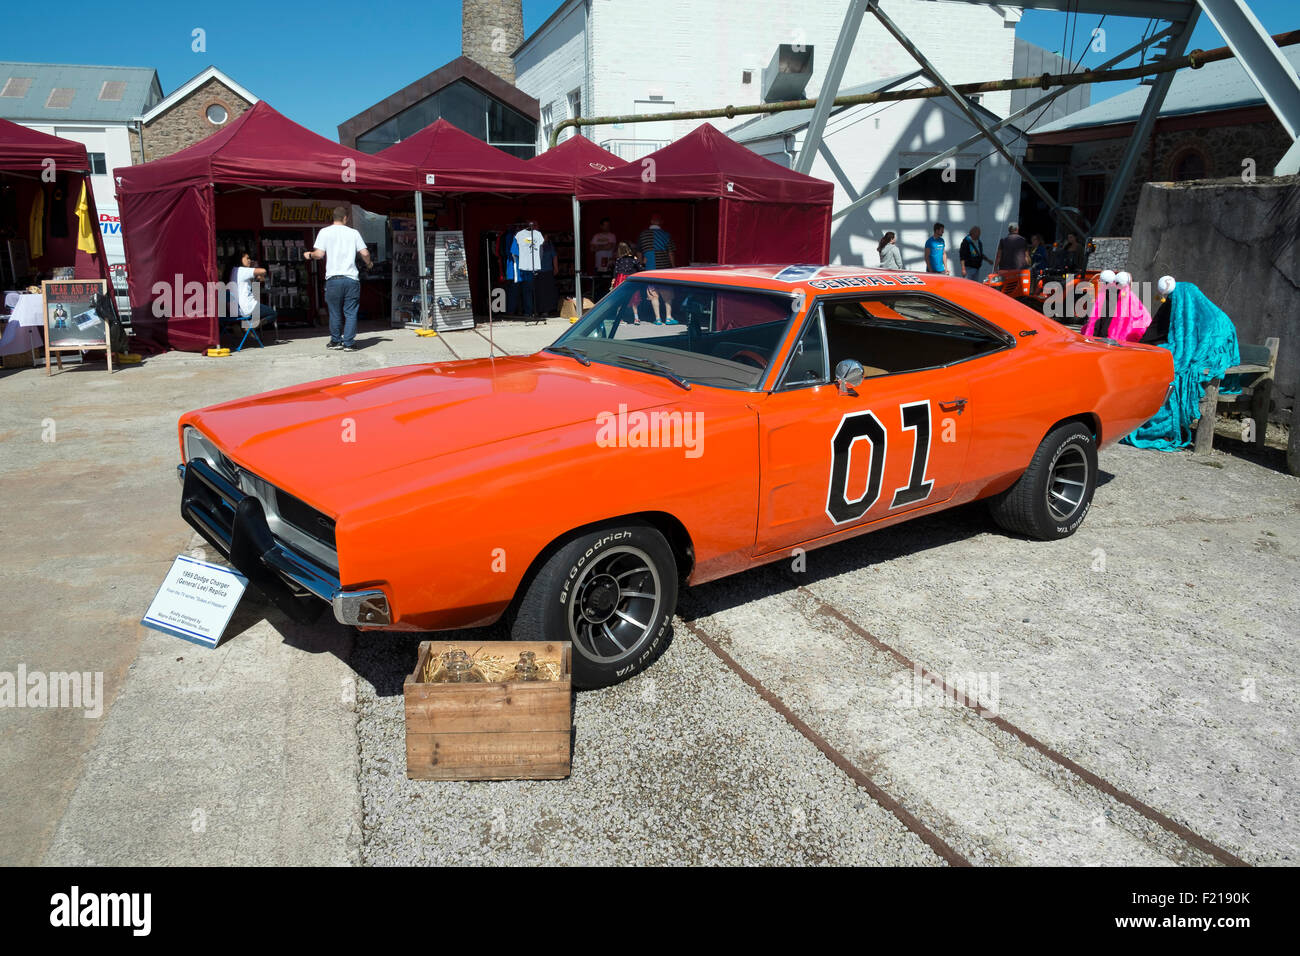 A 1969 Dodge Charger,  replica of the car used in the hit TV series ' The Dukes of Hazzard ' - Stock Image